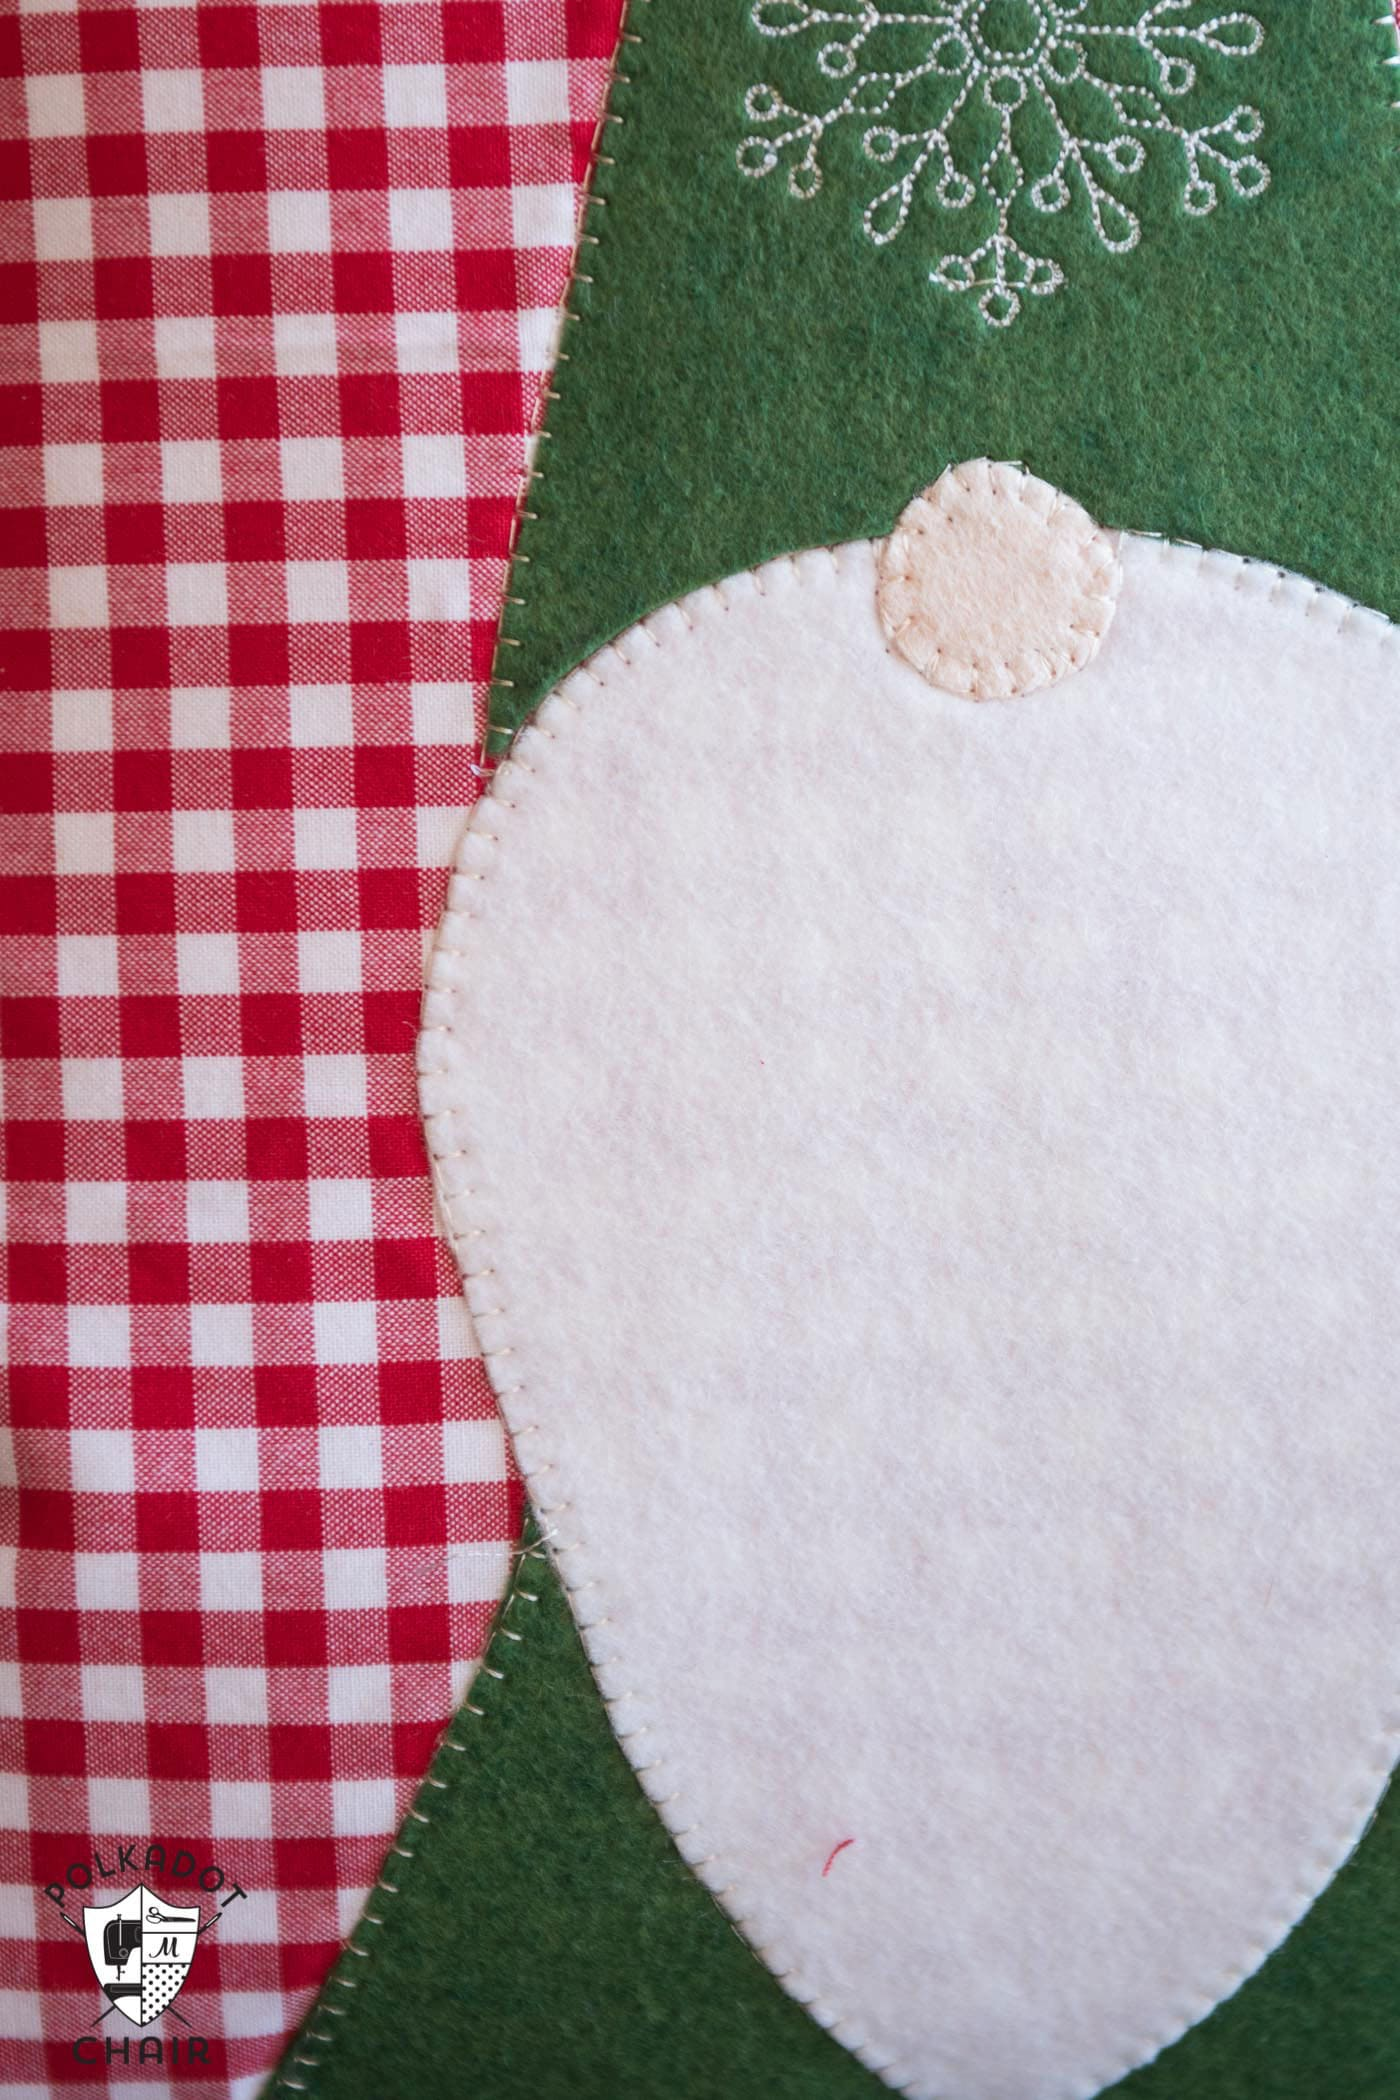 Tomte Christmas Gnome Pillow Pattern  Page 2 of 2  The